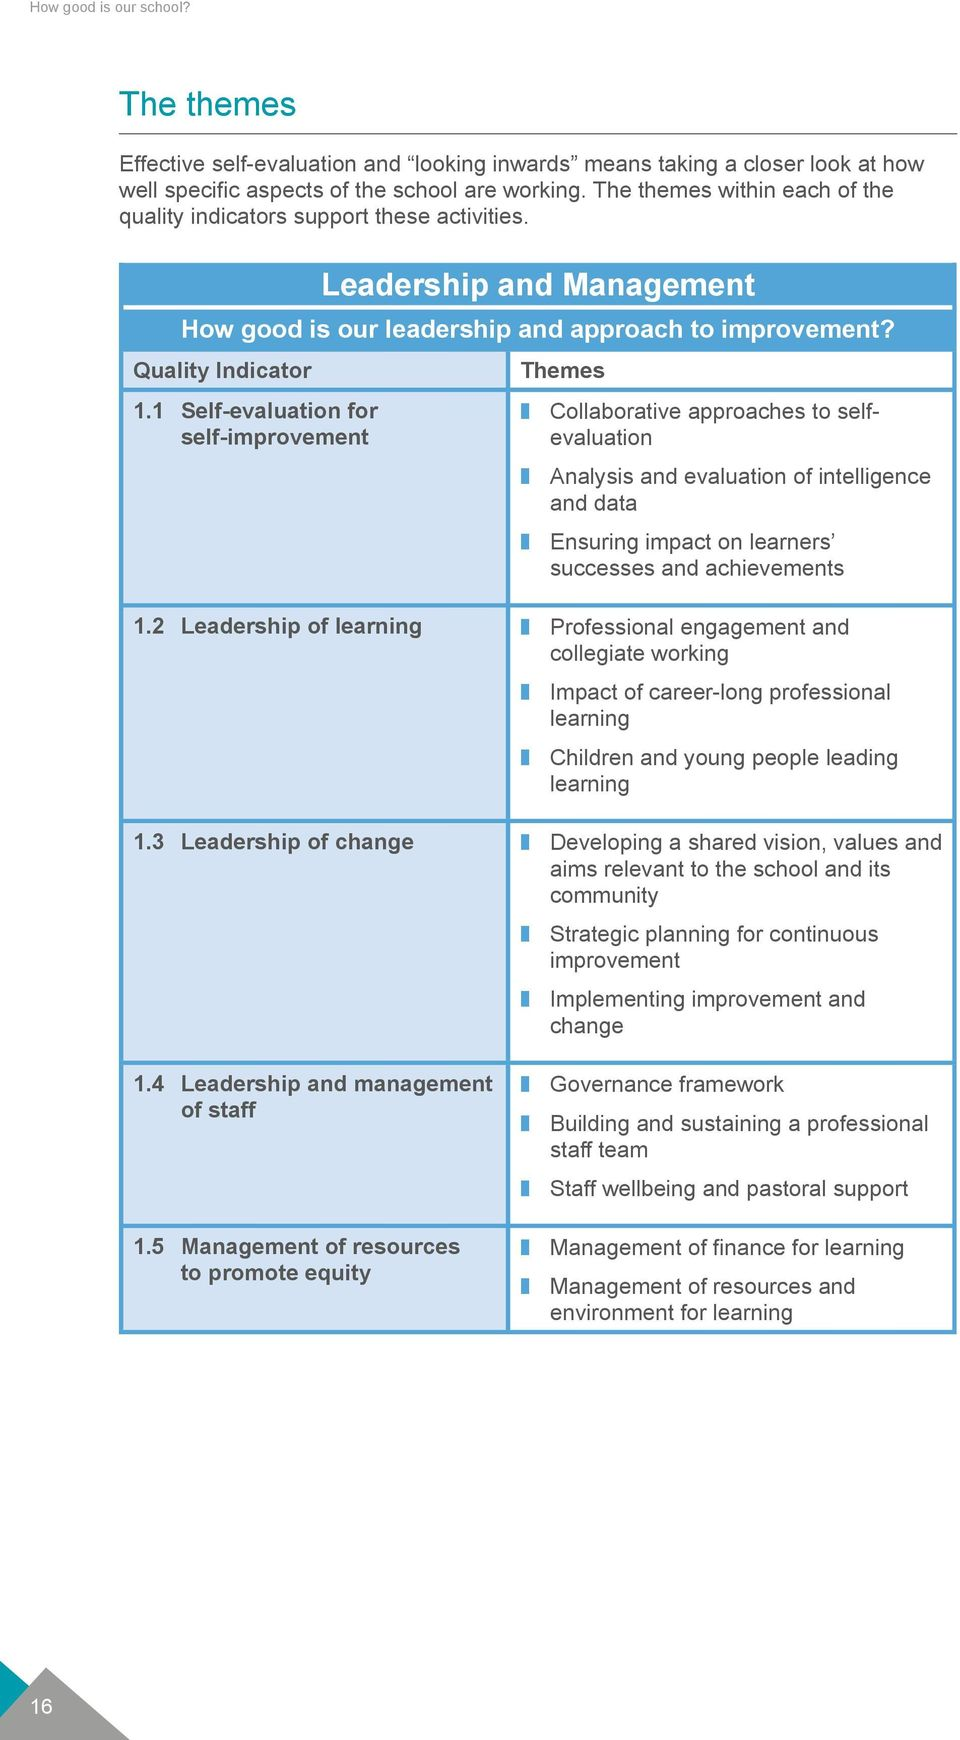 1 Self-evaluation for self-improvement Themes z Collaborative approaches to selfevaluation z Analysis and evaluation of intelligence and data z Ensuring impact on learners successes and achievements